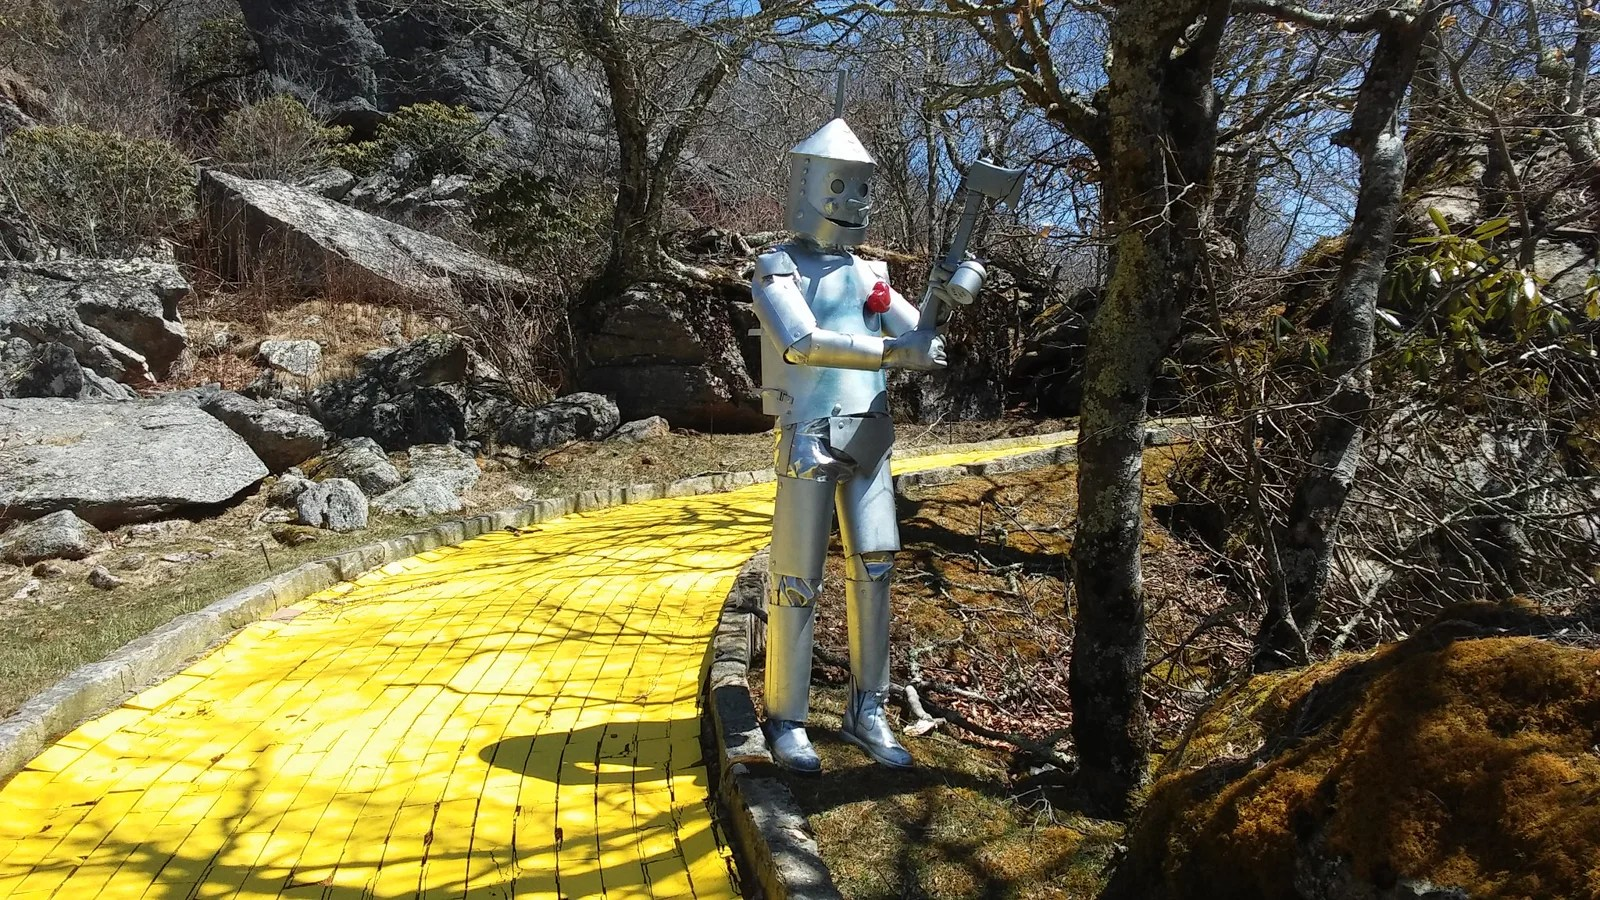 Follow The Yellow Brick Road Inside a Rarely Open Wizard of Oz Theme Park